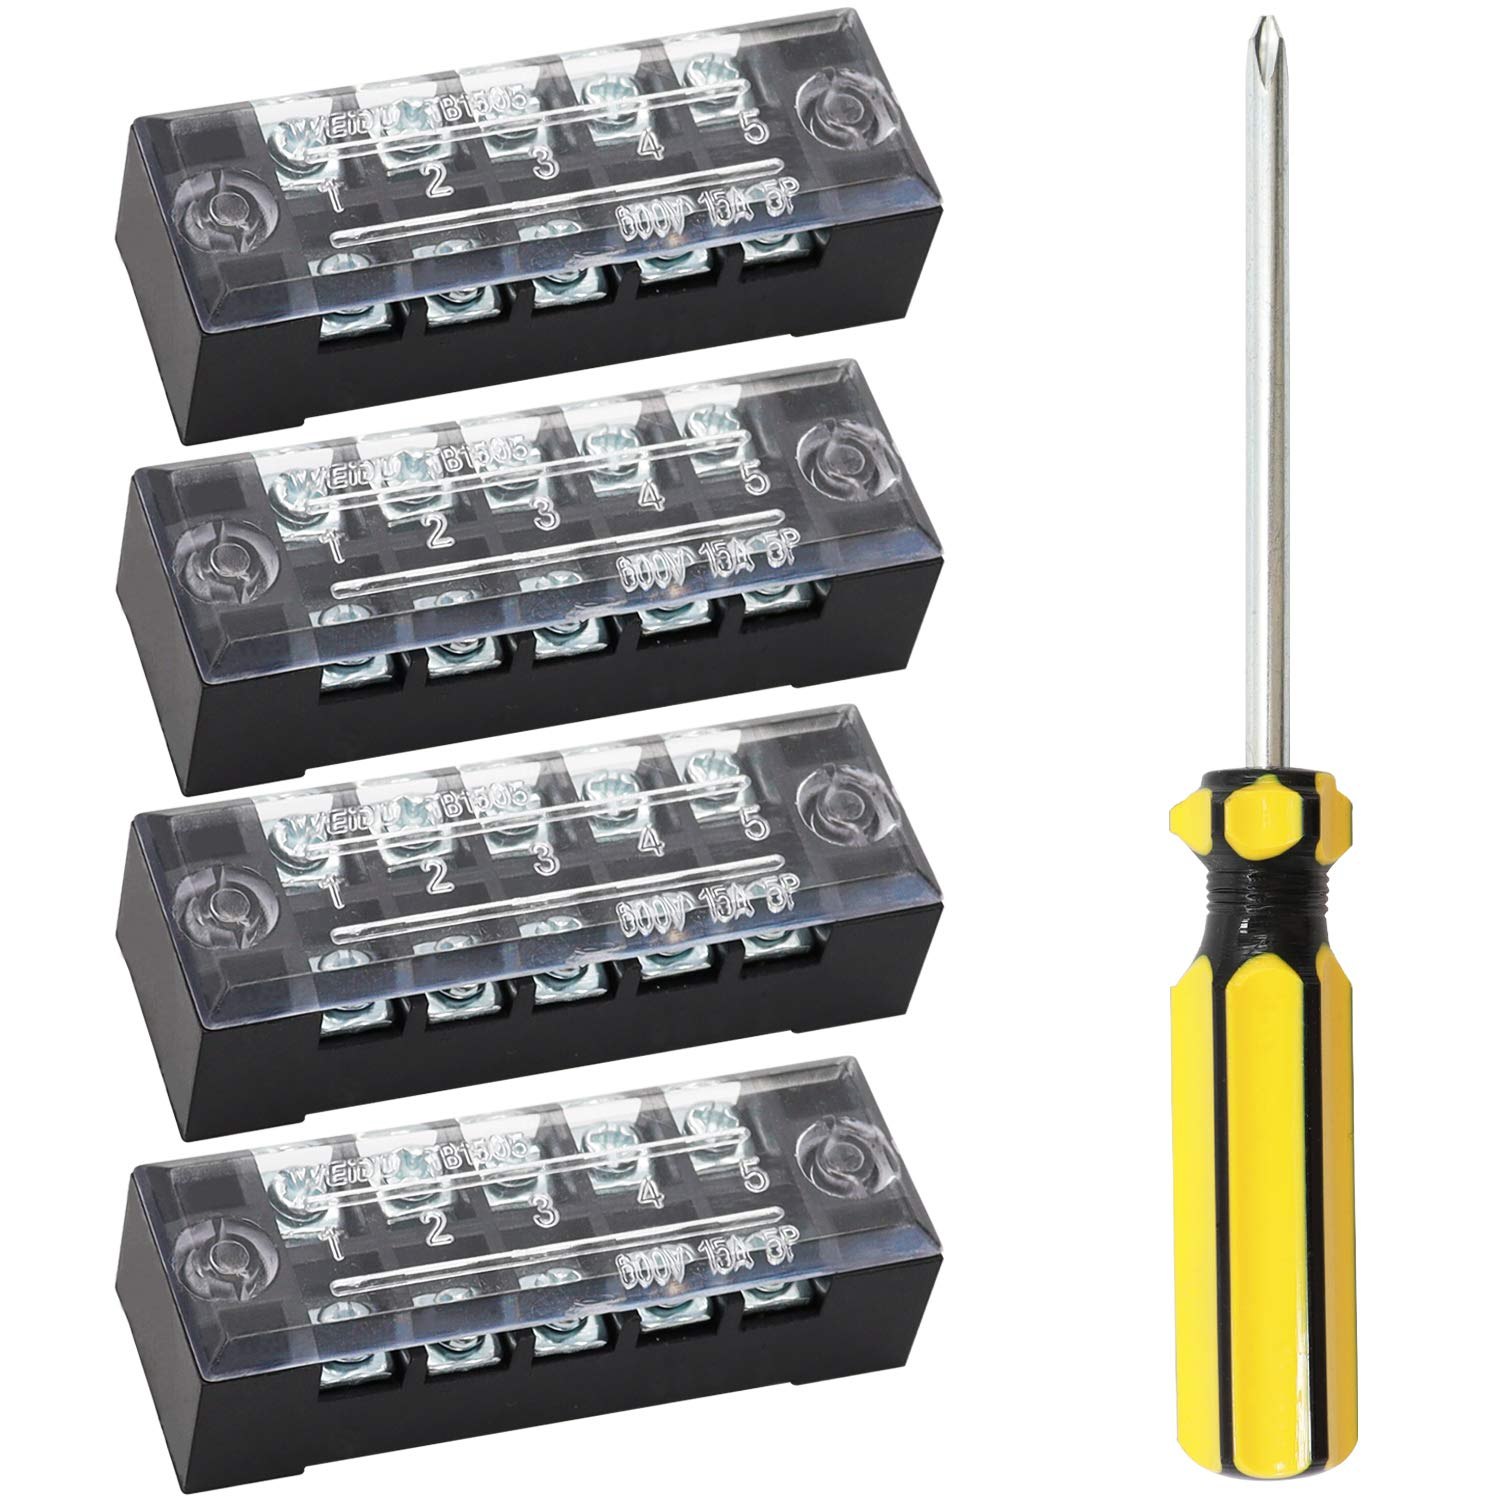 mxuteuk 4 Pcs 5 Positions Max 42% OFF Dual Max 60% OFF Covered Screw Rows Barrier Block